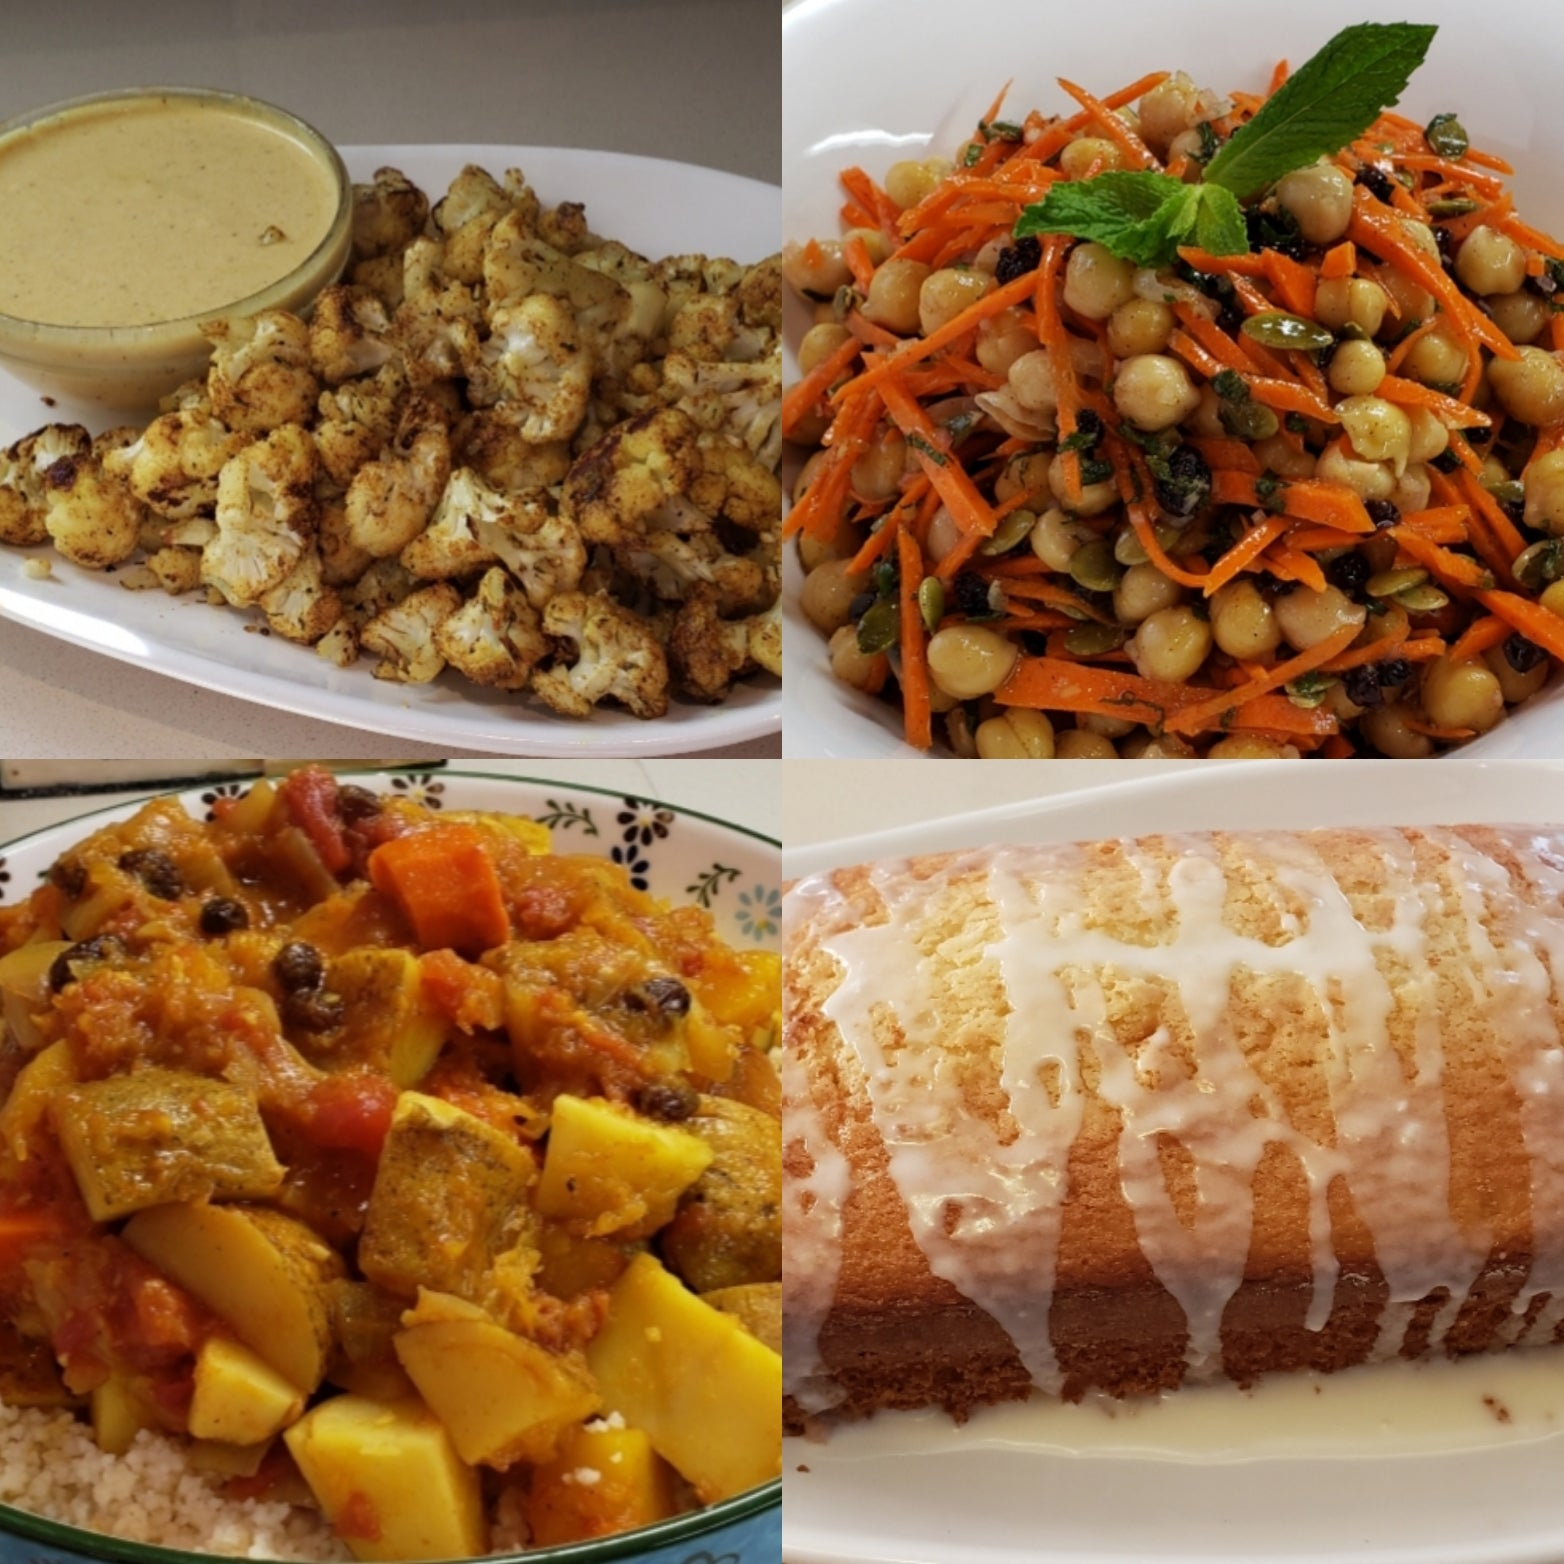 Meal of the Week - Saturday June 13